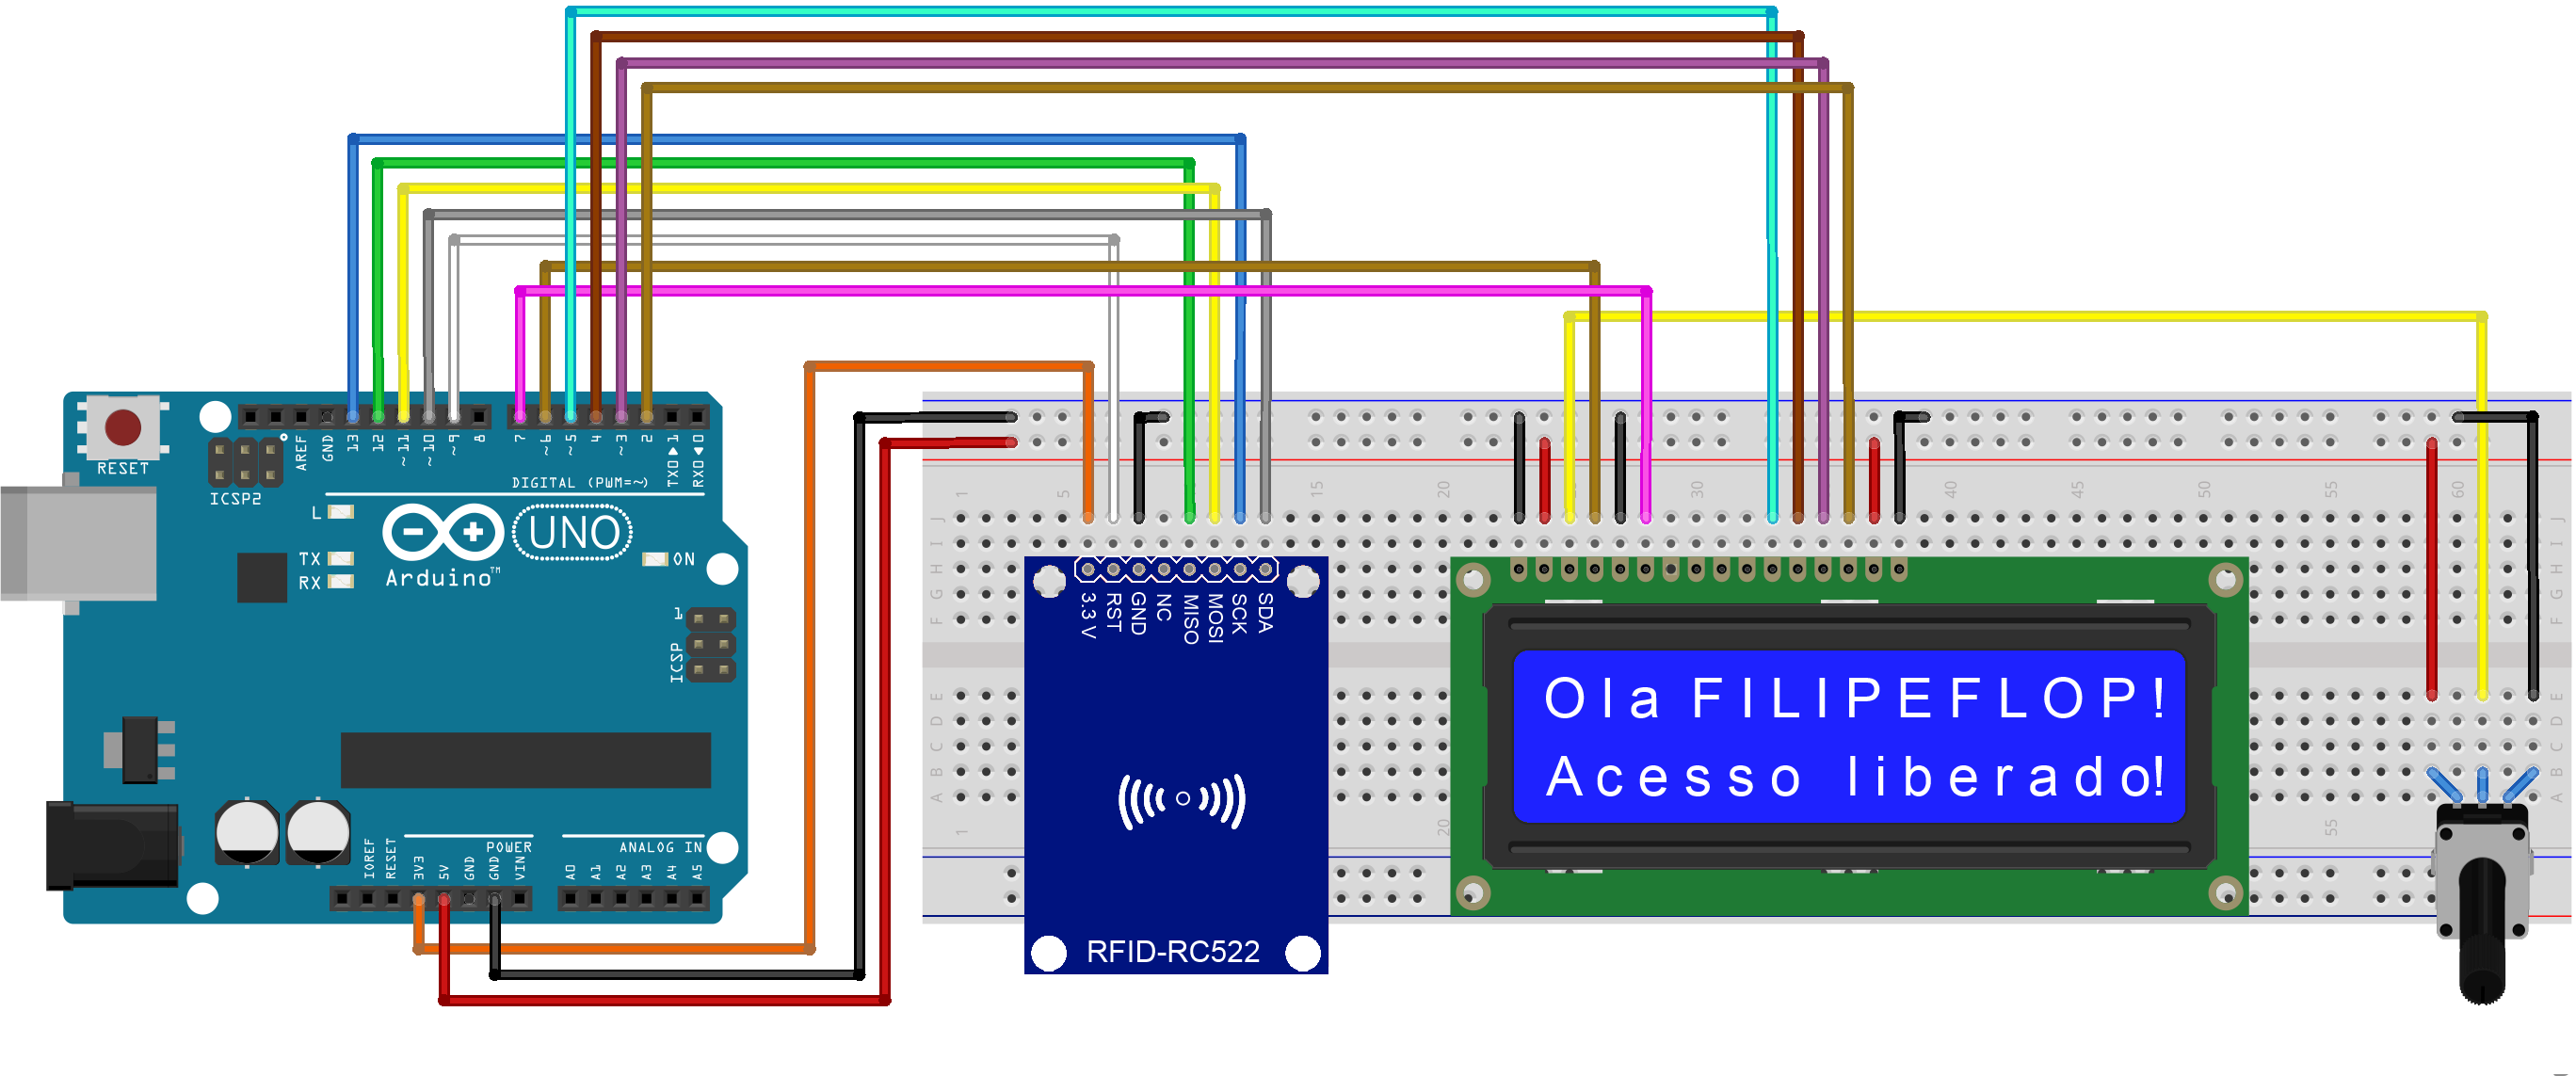 rfid projects The goal of this project was to implement an application that detects the presence of a microphone at a given location using radio frequency identification (rfid) technology to sense.